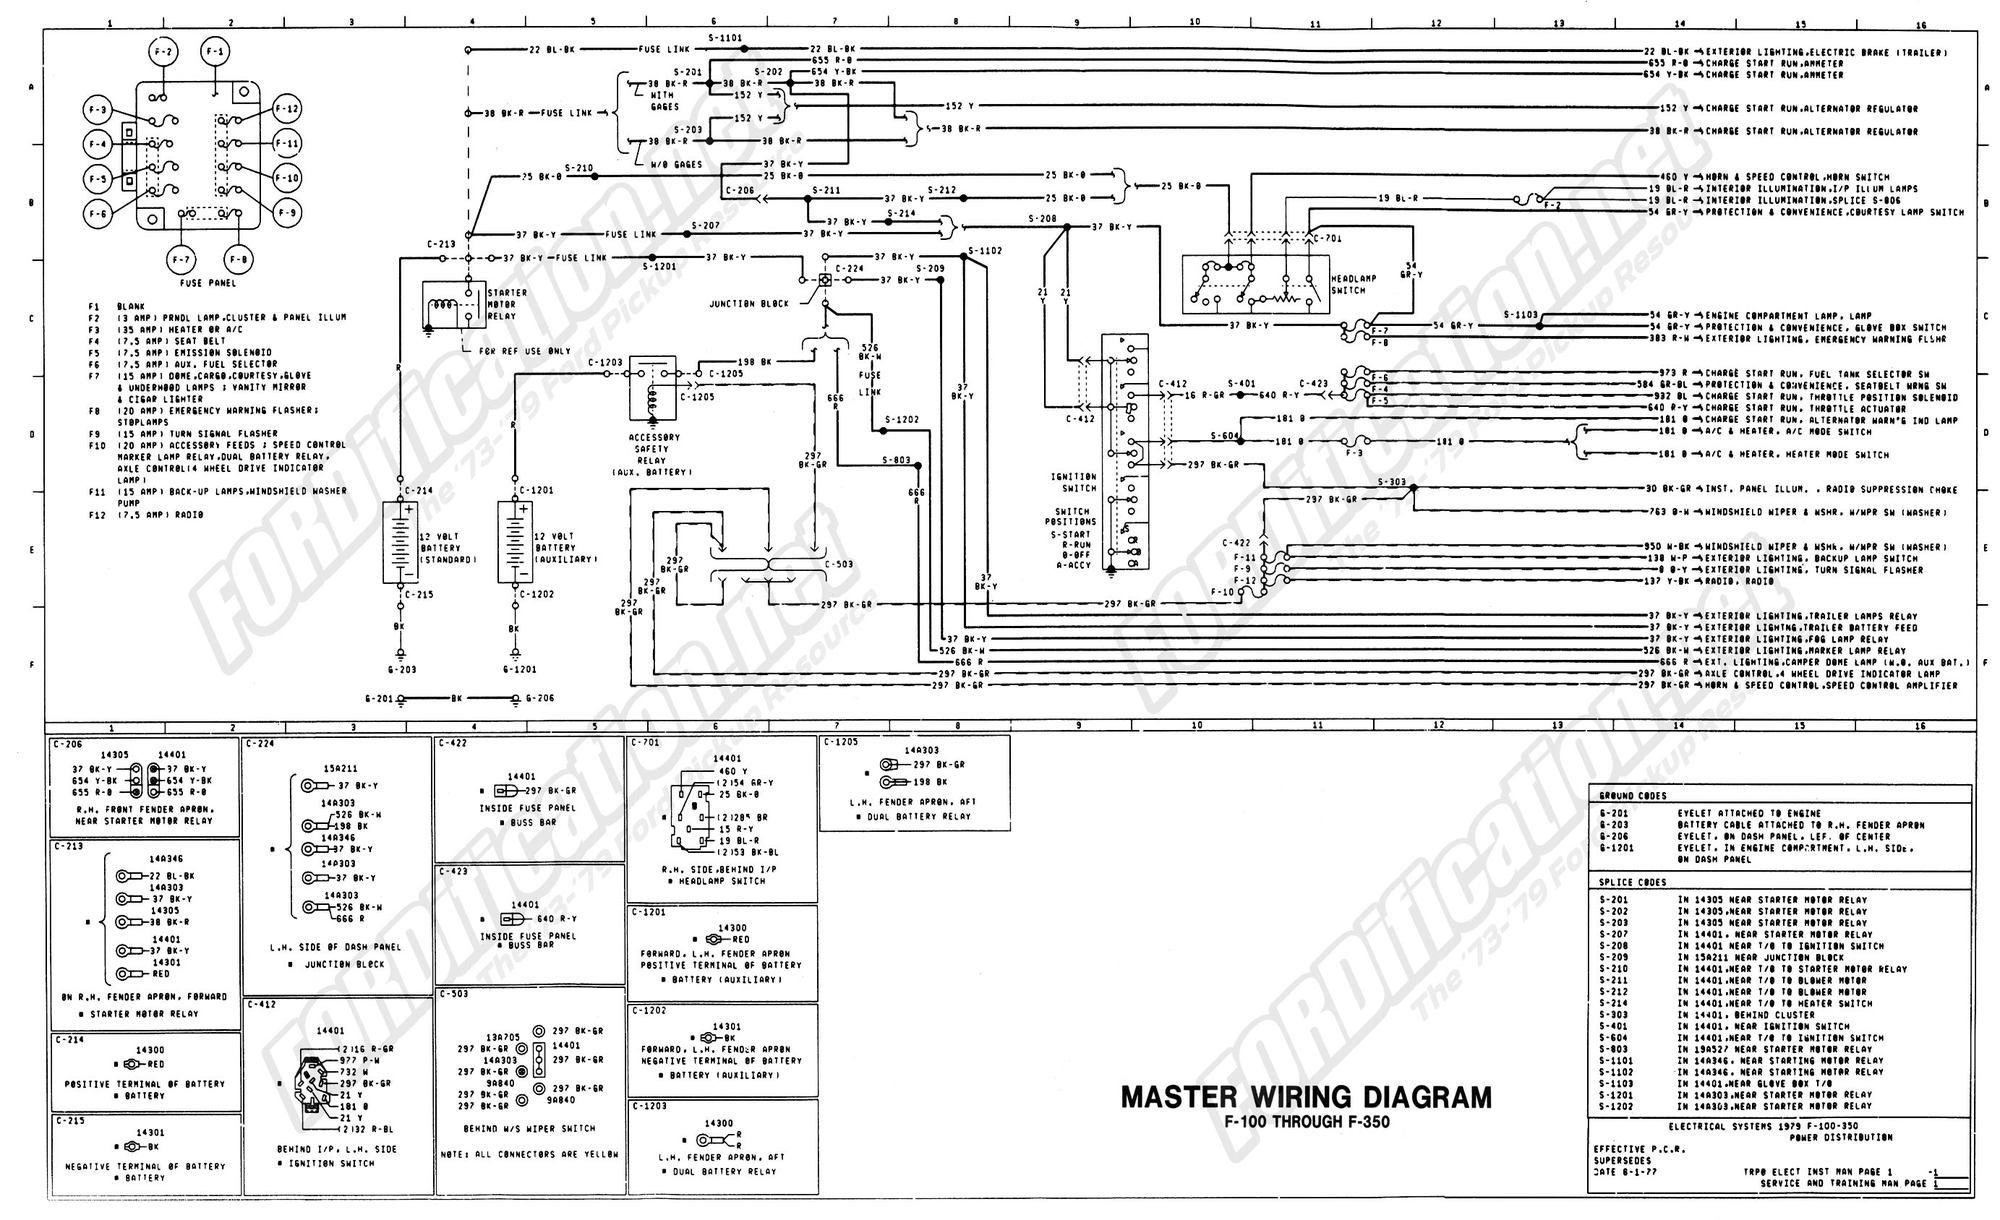 International 466 Alternator Wiring Electrical Diagrams 1984 Ford Truck Dt466 Diagram 36 Images Gmc 80 79master 1of9 Cadb6d8d2de650ee2fad3eace48af21fd1725e1e